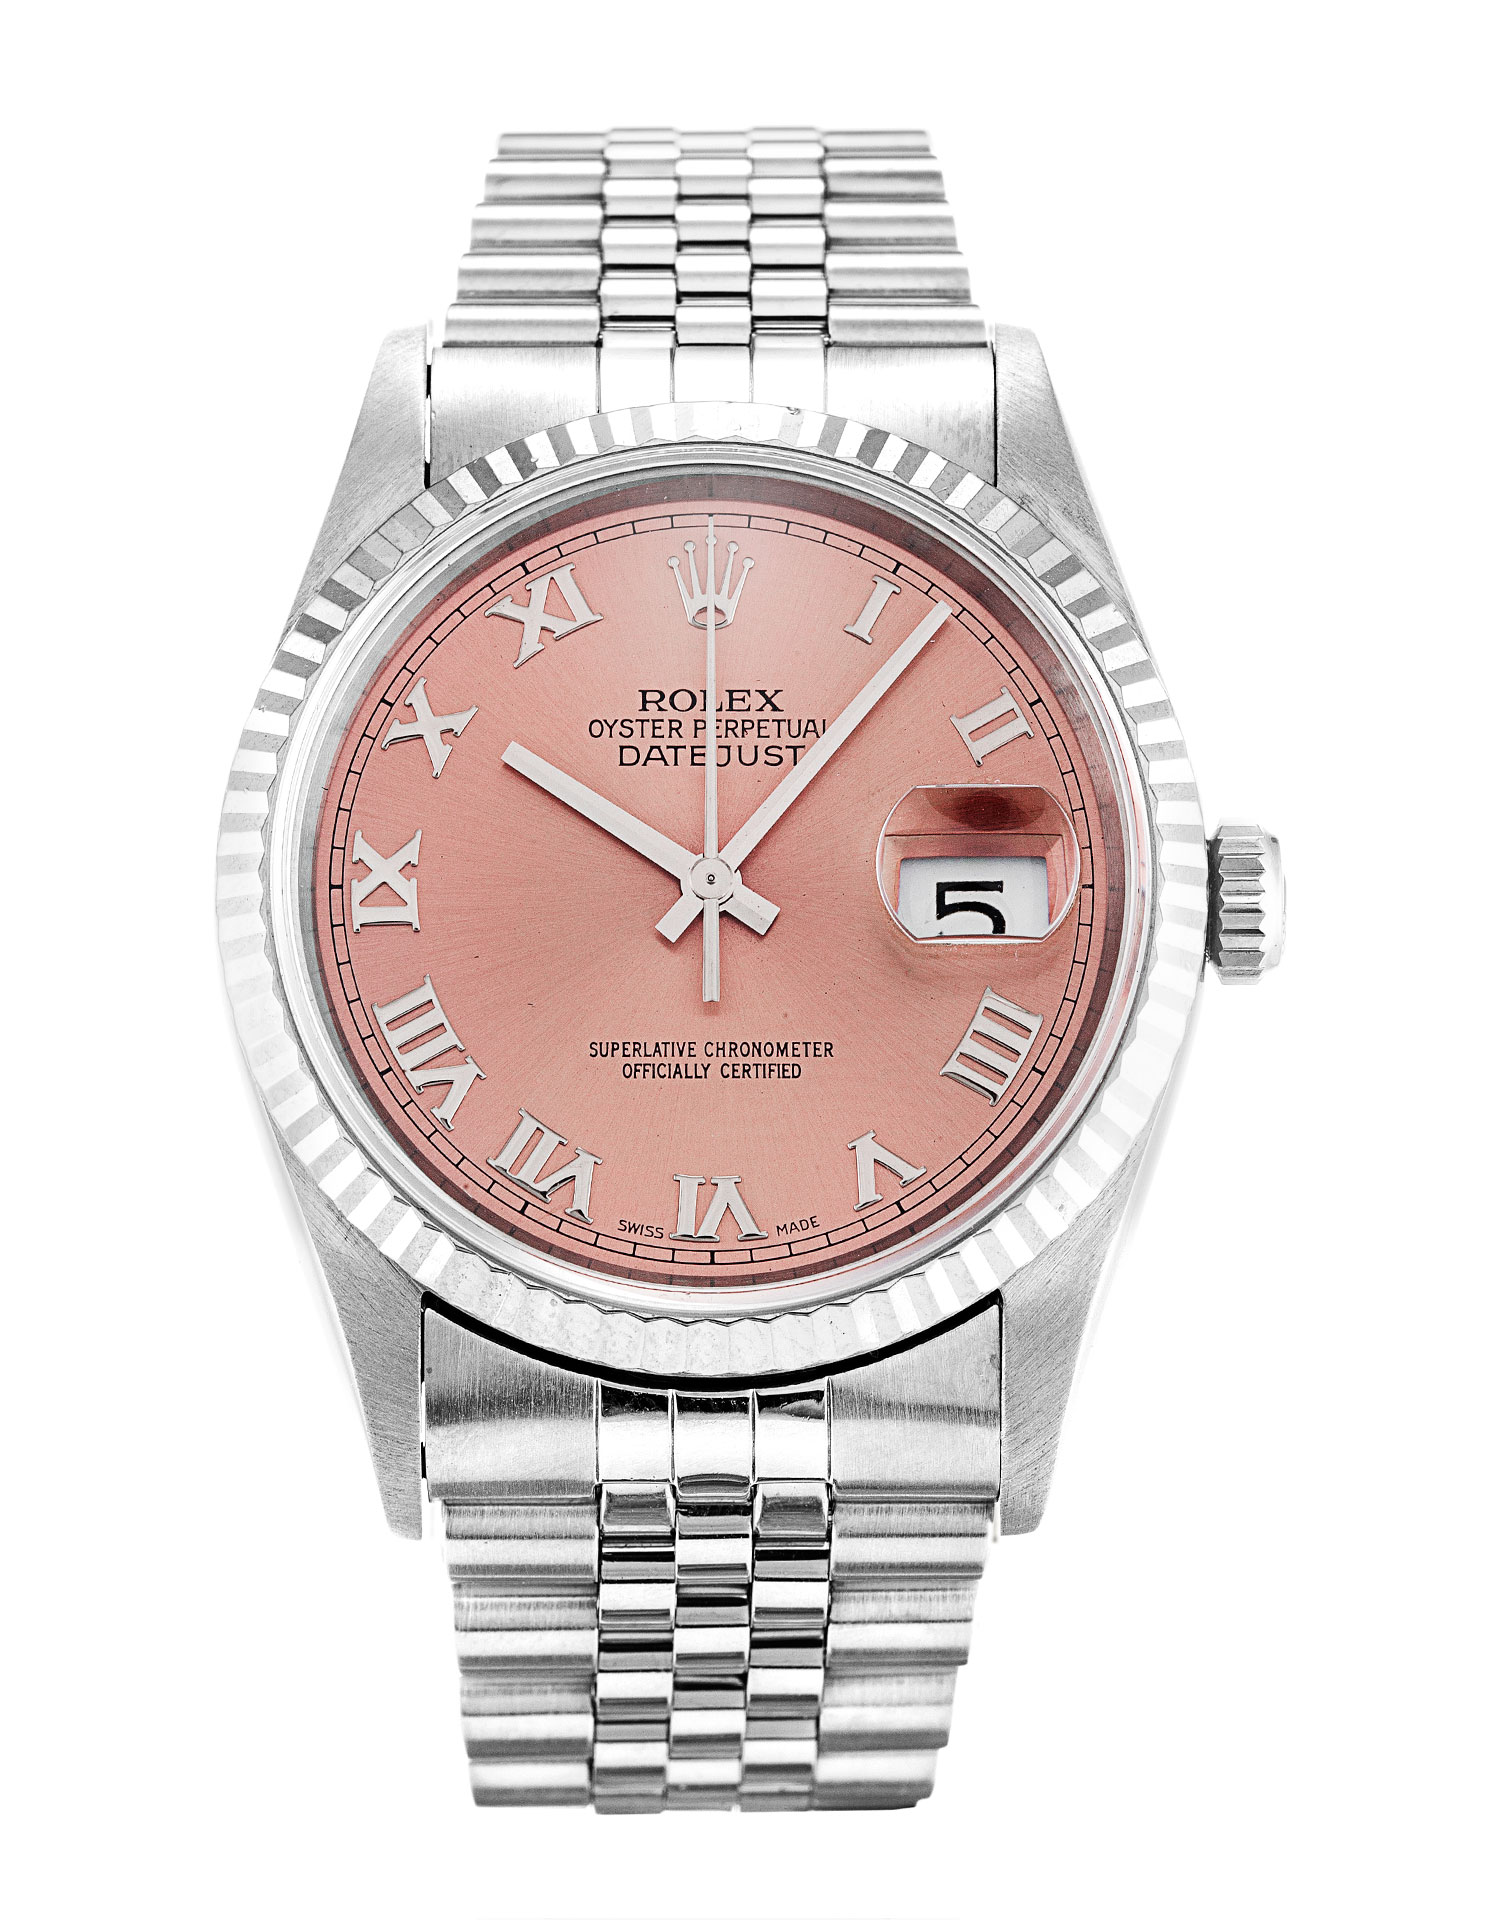 Rolex Datejust 16234 Mens 36 Mm Steel & White Gold Case Automatic Movement – iapac.to